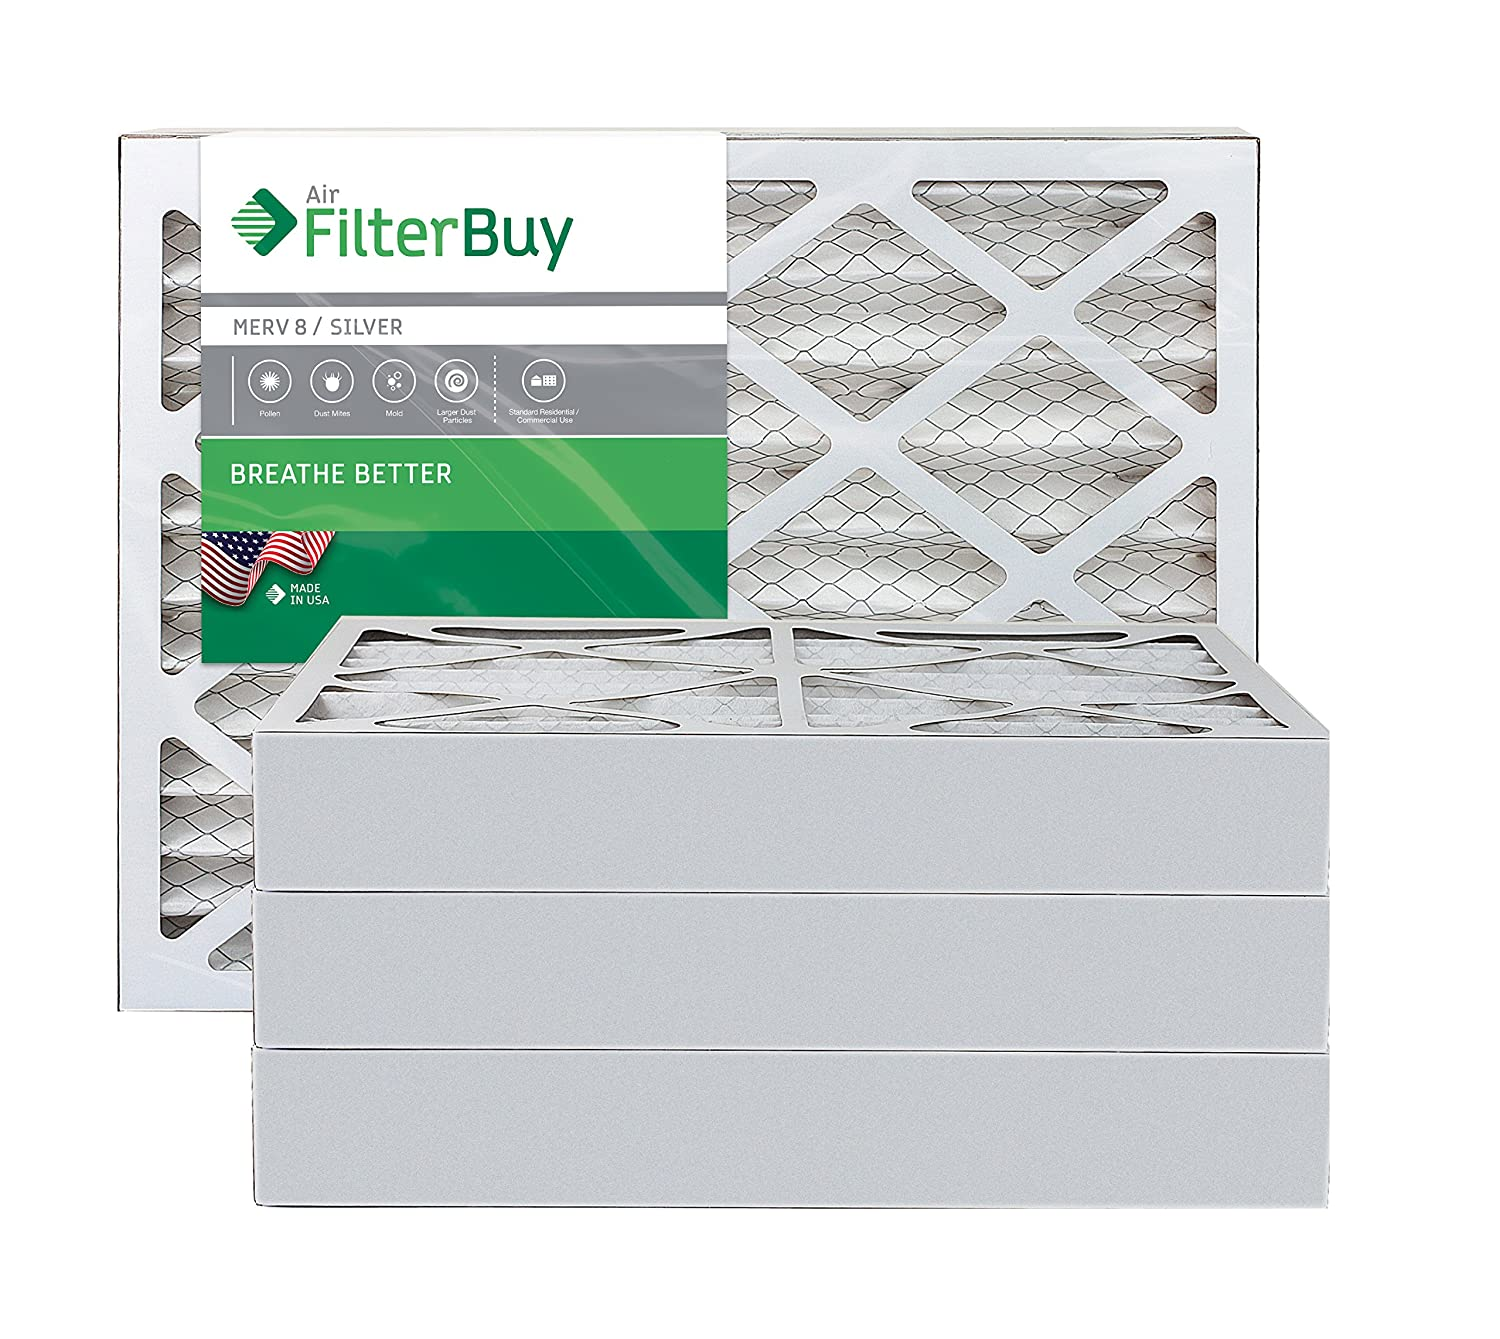 3. FilterBuy 16x25x4 MERV 8 Pleated AC Furnace Air Filter (Pack of 4 Filters), 16x25x4 - Silver